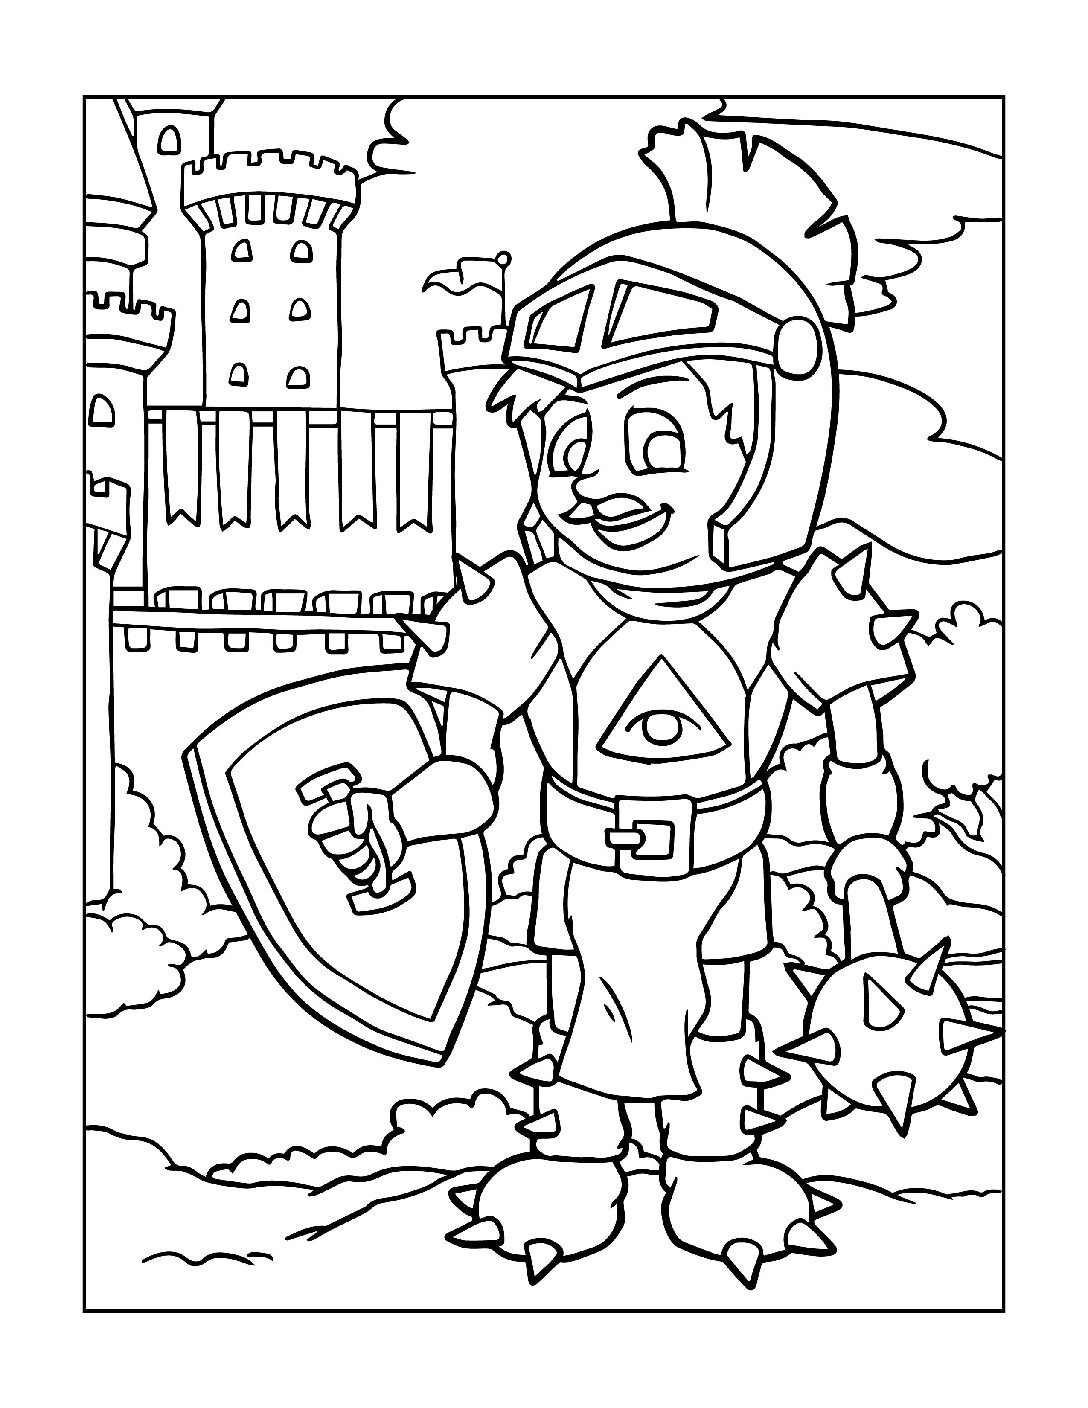 Coloring-Pages-Pirates-and-Knights-for-Boys-6-01-pdf Free Printable Pirates &  Knights Colouring Pages